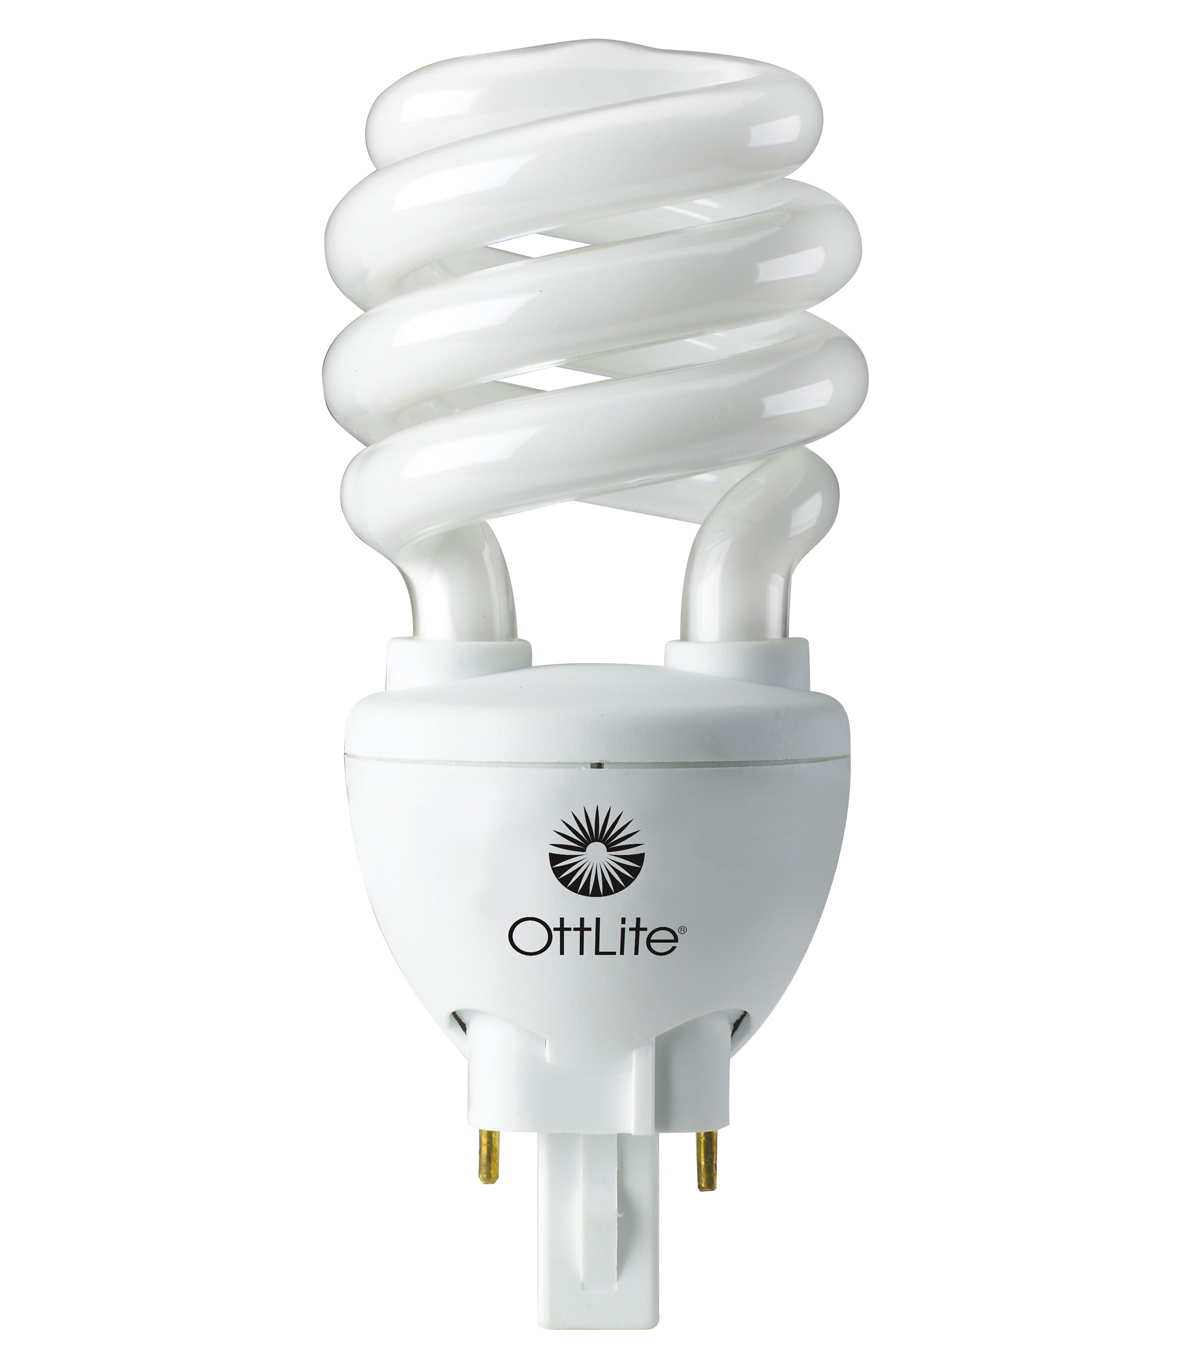 OttLite 20W Replacement Swirl Plug-in Bulb-Replacement Type M